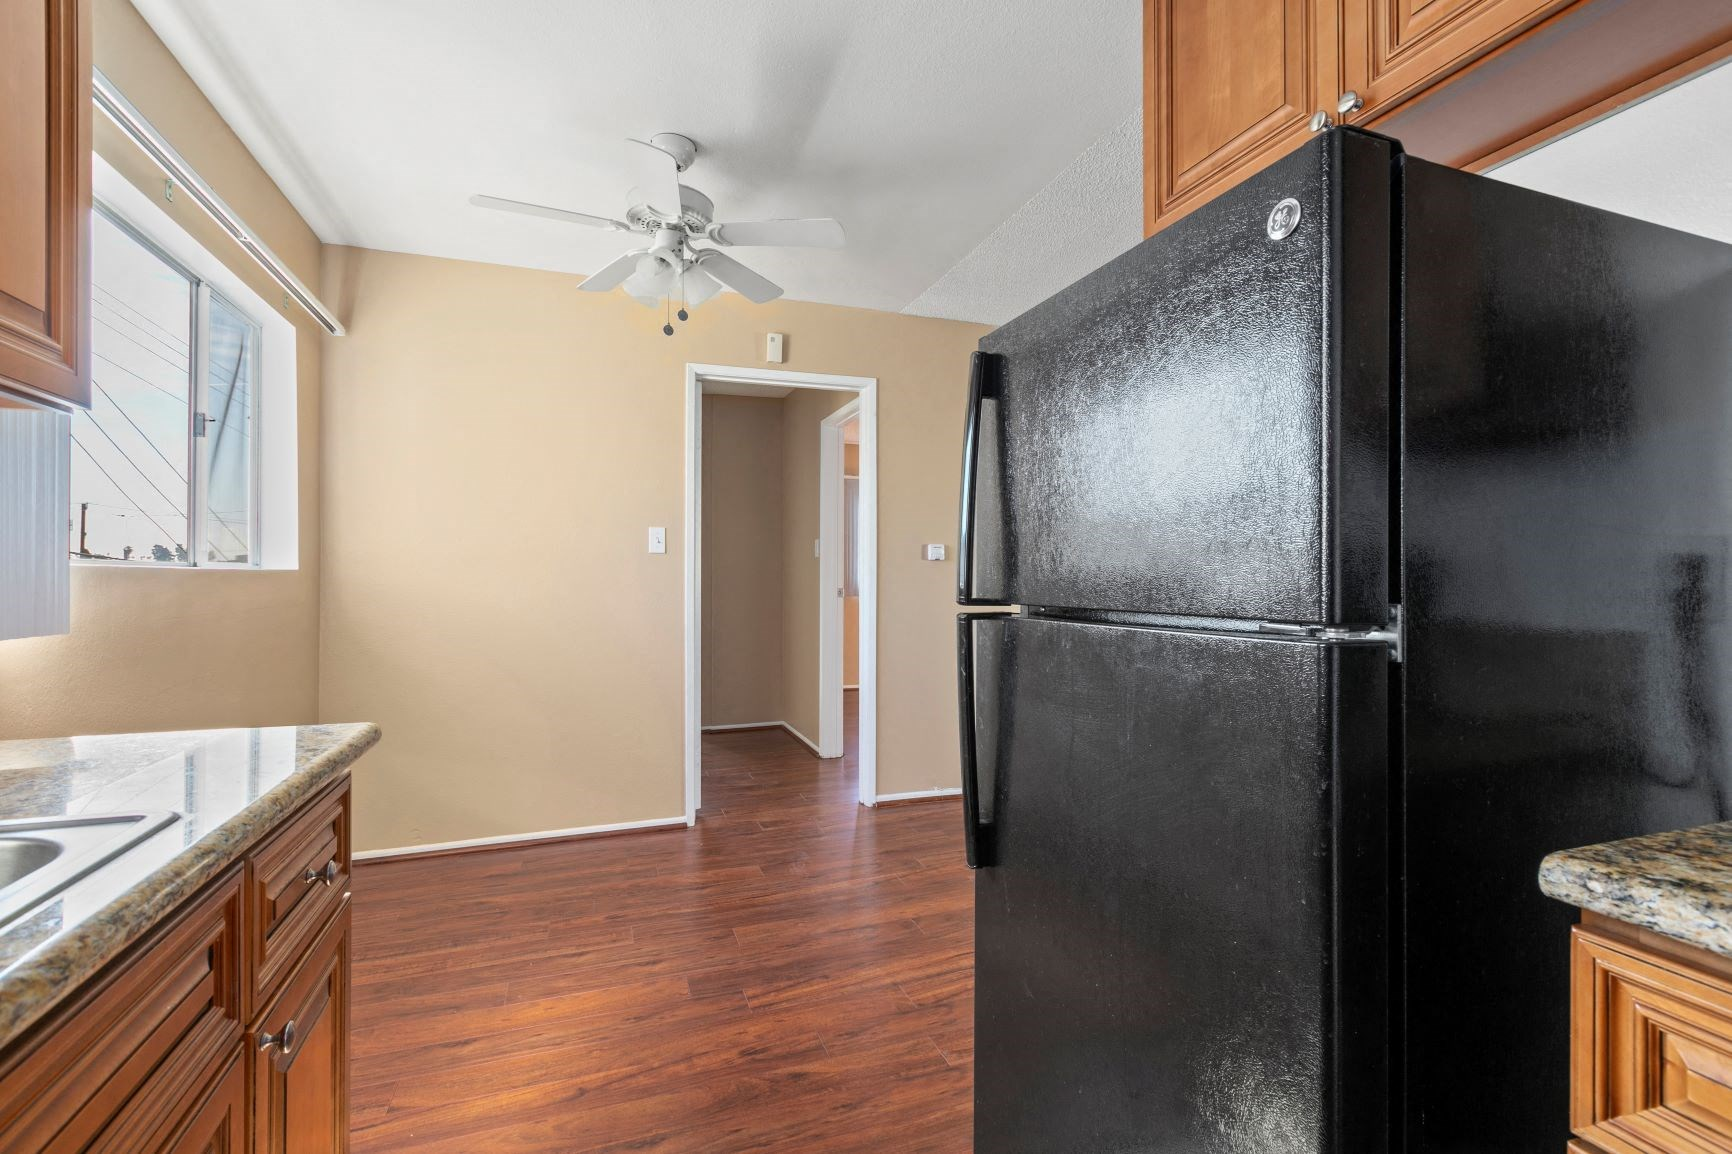 Upgraded Kitchen Appliances, Countertops and Cabinets